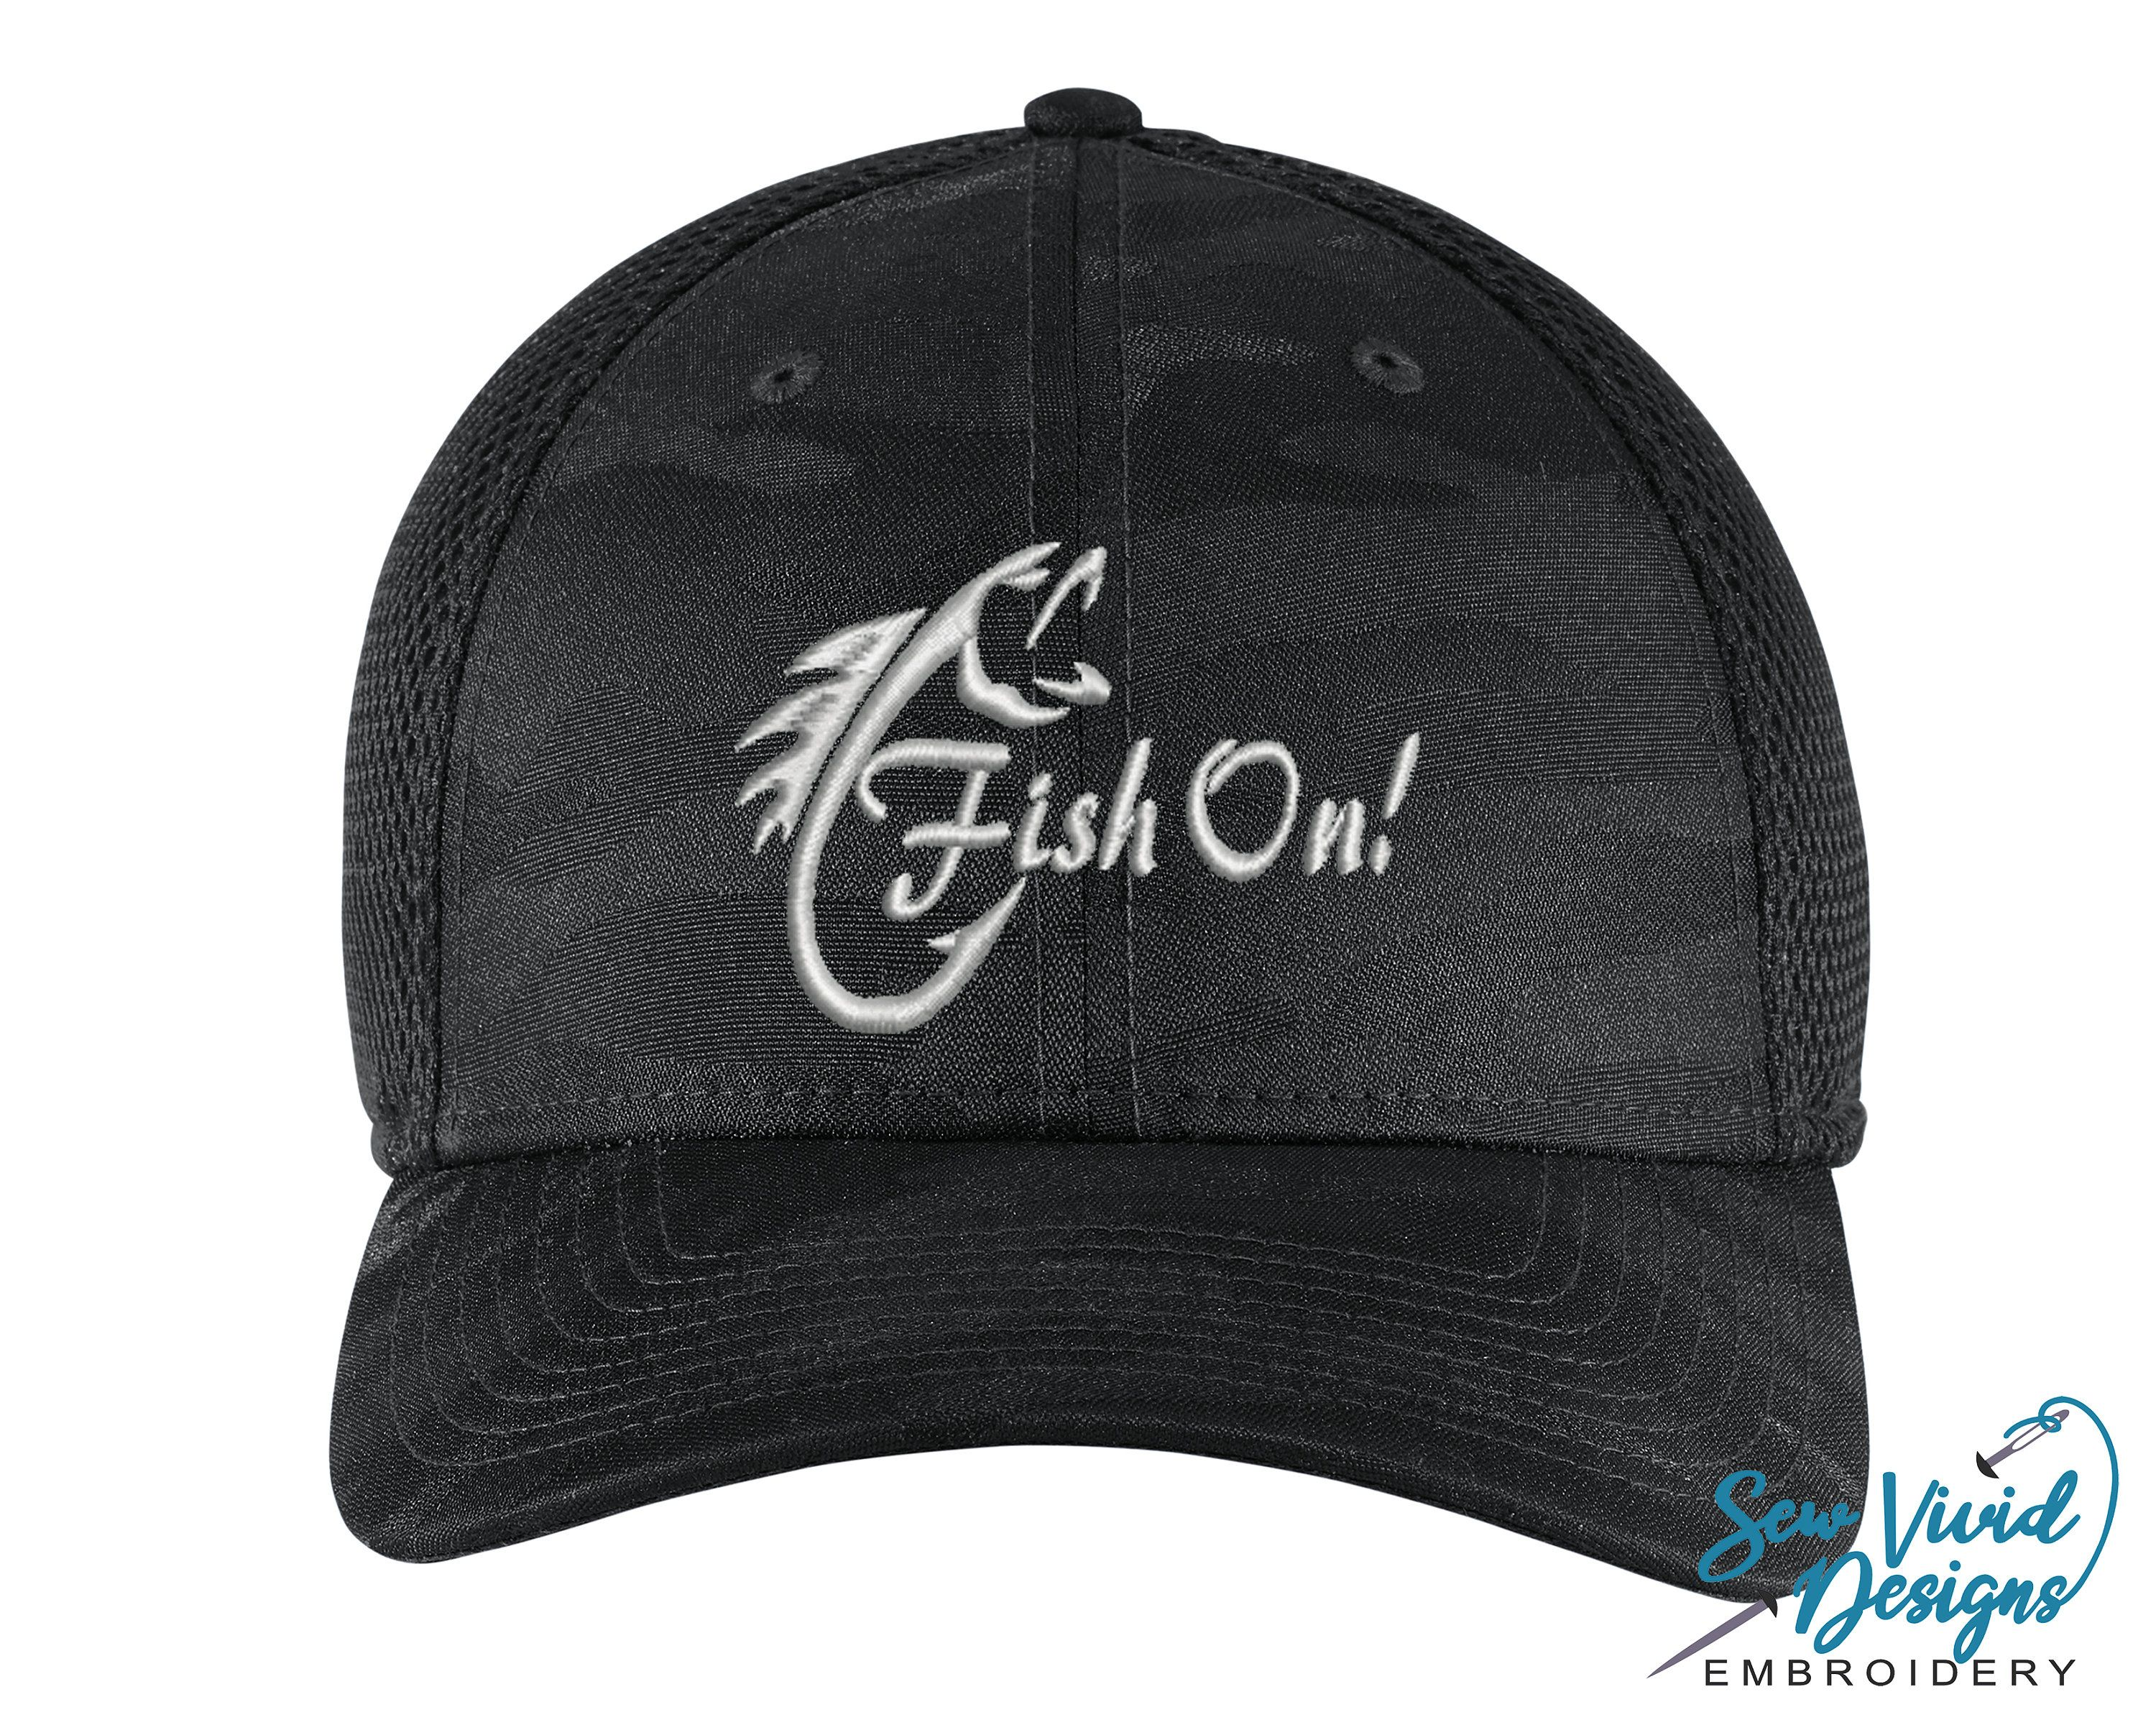 Fish On Hat Custom Embroidered Fitted Hat Fishing Hat Bass Fishing Gift Gift For Fisherman Angler Fis In 2021 Fitted Hats Custom Embroidered Hats Fishing Hat